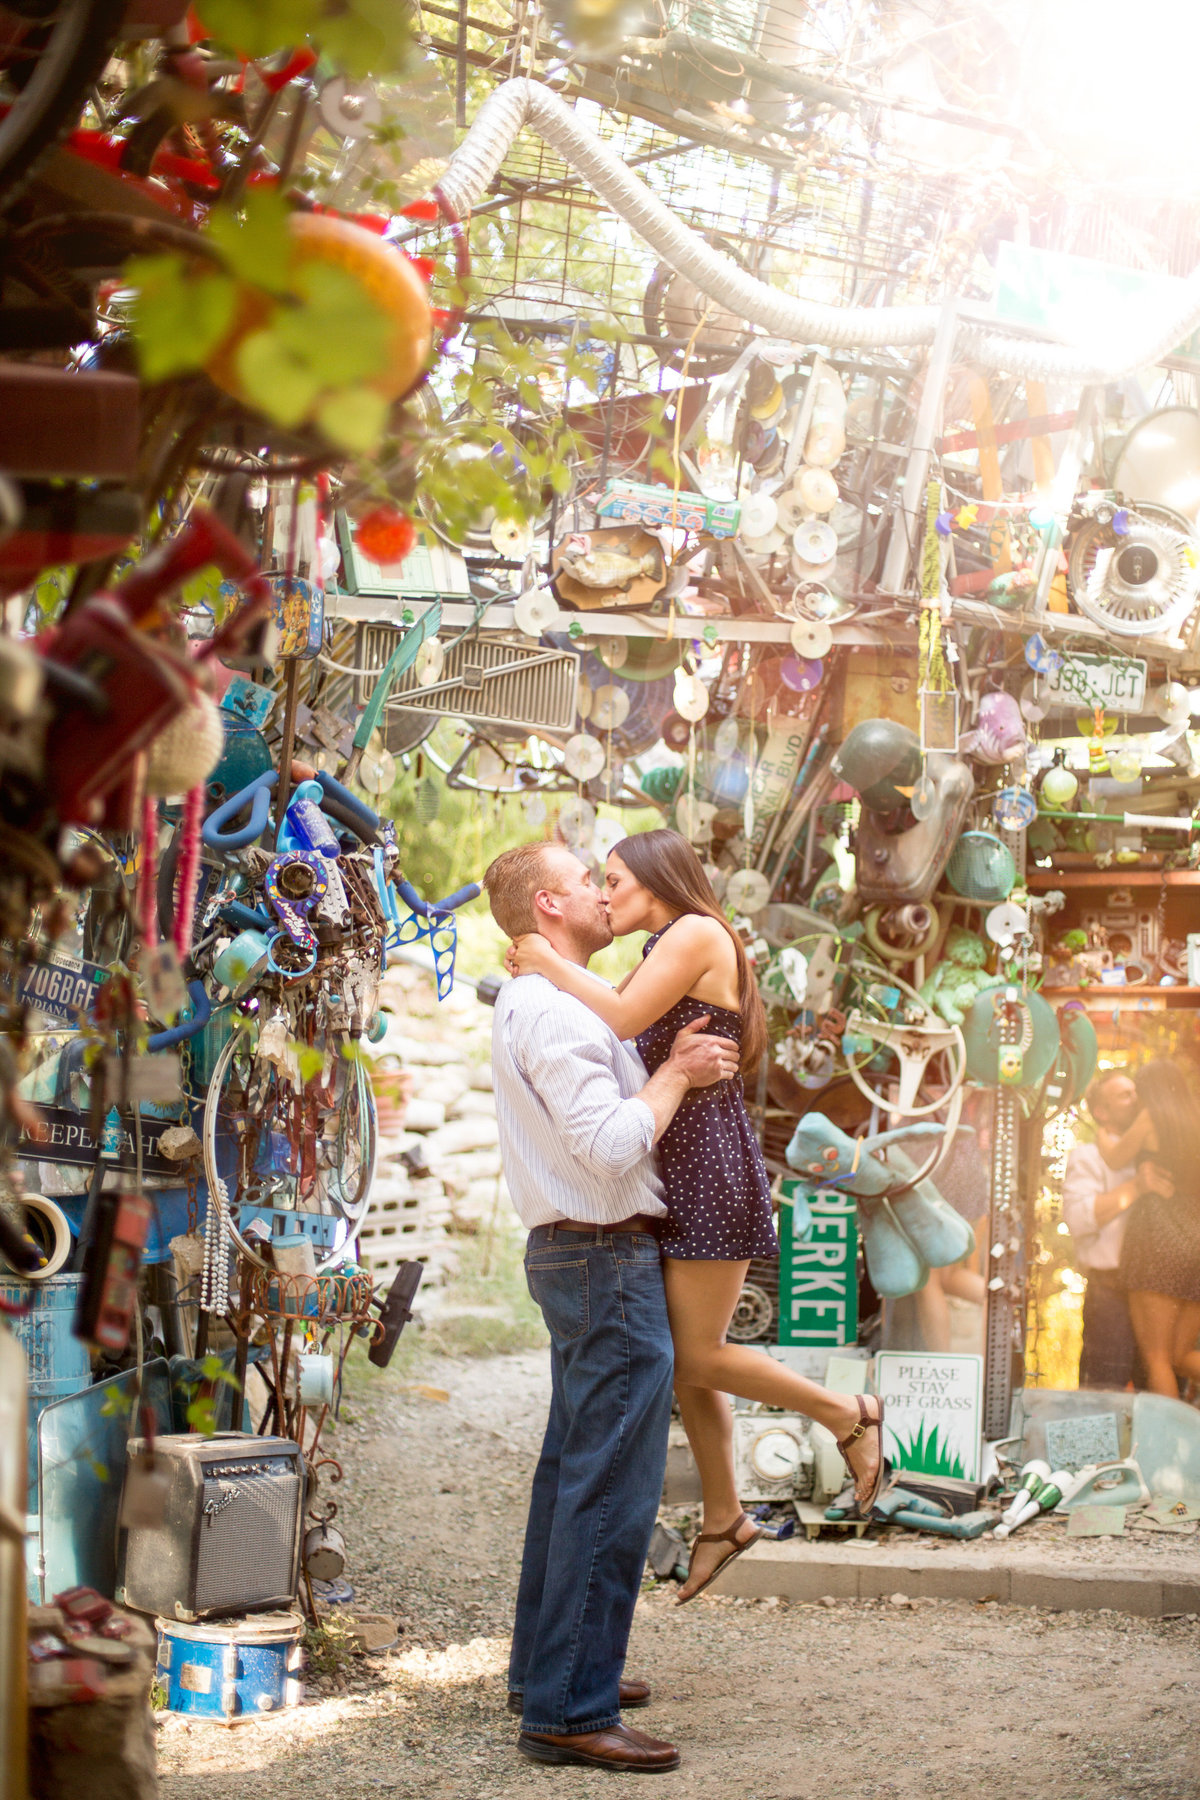 Fiancé lifting his fiancée up and kissing her at the Cathedral of Junk in Austin, Texas.